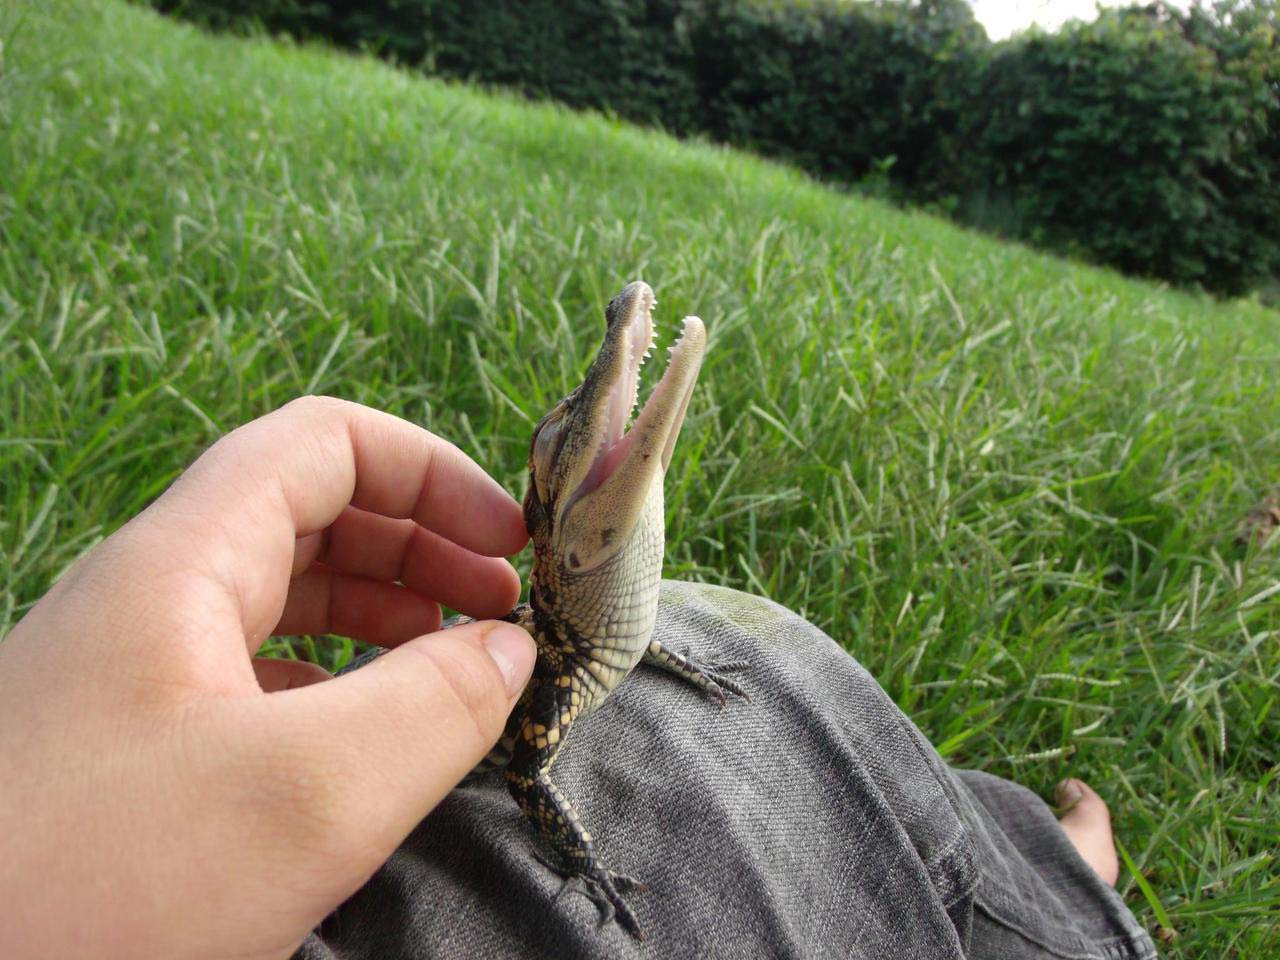 27 Adorable & Tiny Animals That Are Too Cute To Handle #23: Alligator